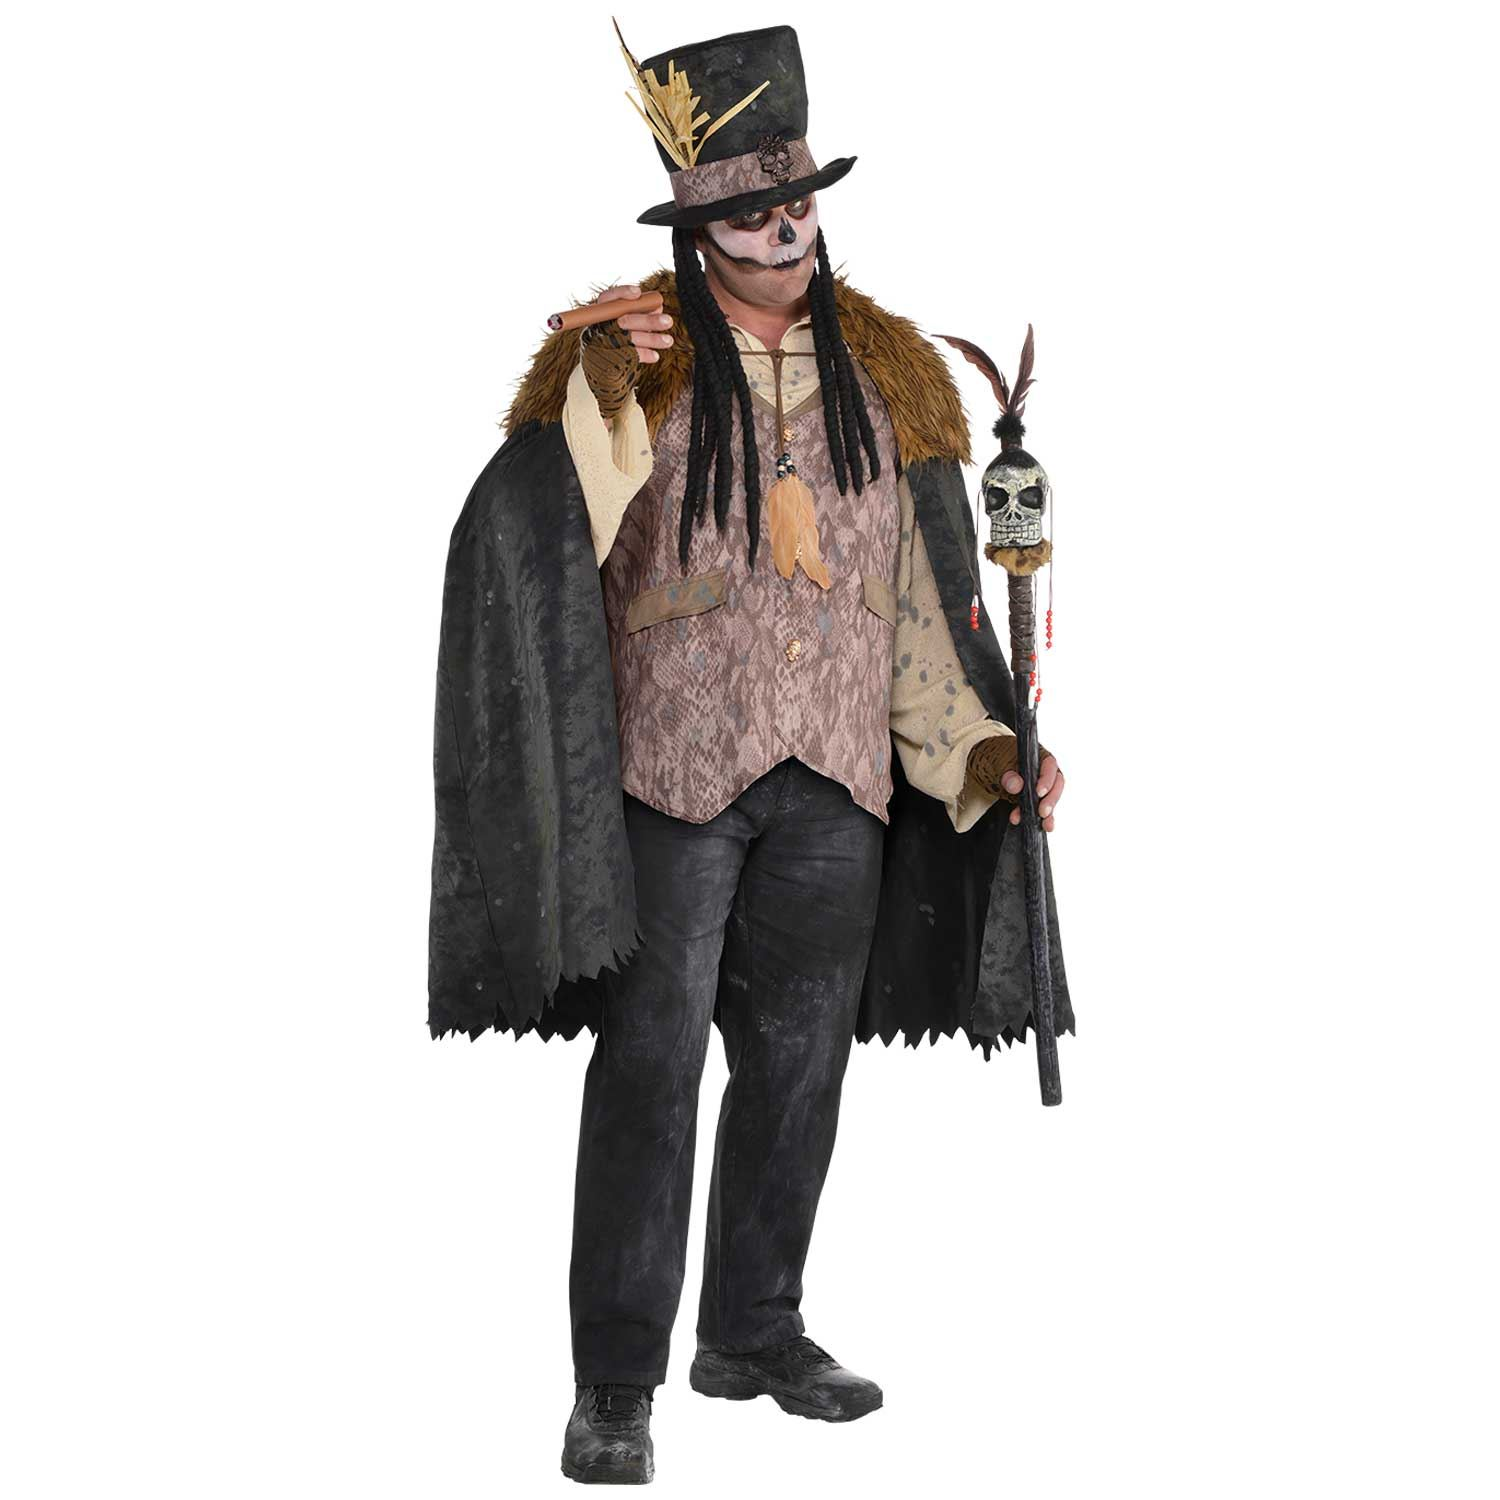 Mens-Witch-Doctor-Halloween-Costume-Voodoo-Fancy-Dress-  sc 1 st  eBay & Mens Witch Doctor Halloween Costume Voodoo Fancy Dress u0026 Accessories ...